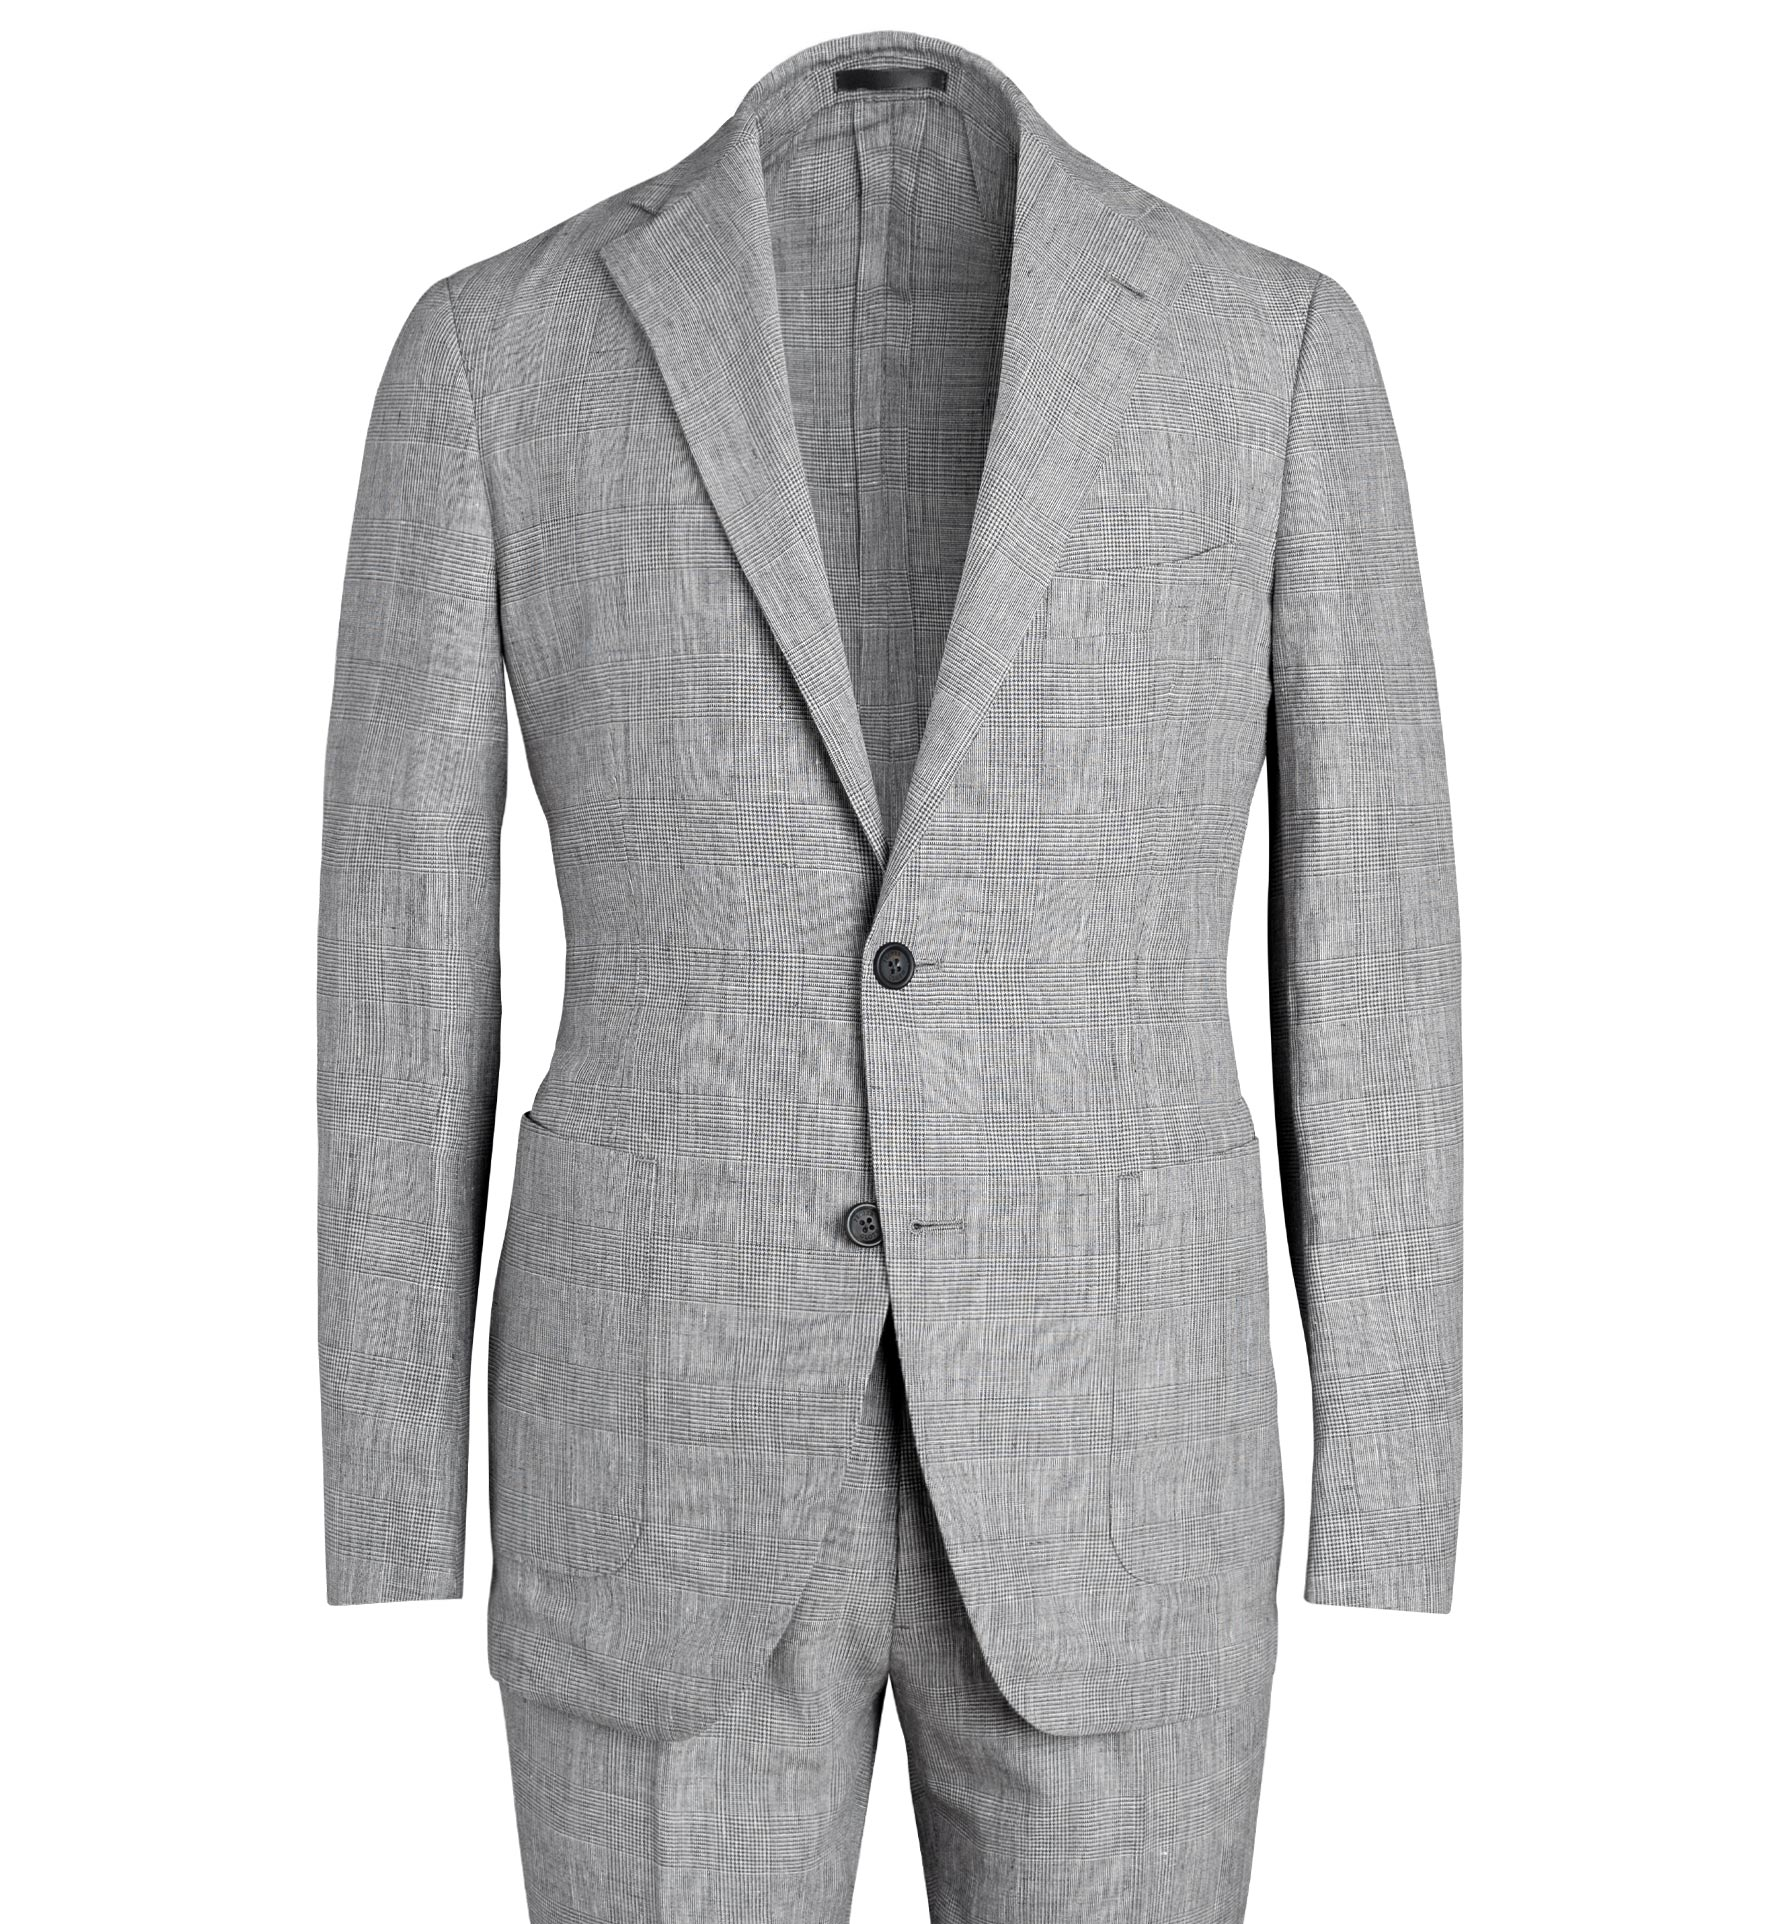 Zoom Image of Bedford Light Grey Glen Plaid Wool and Linen Suit Jacket